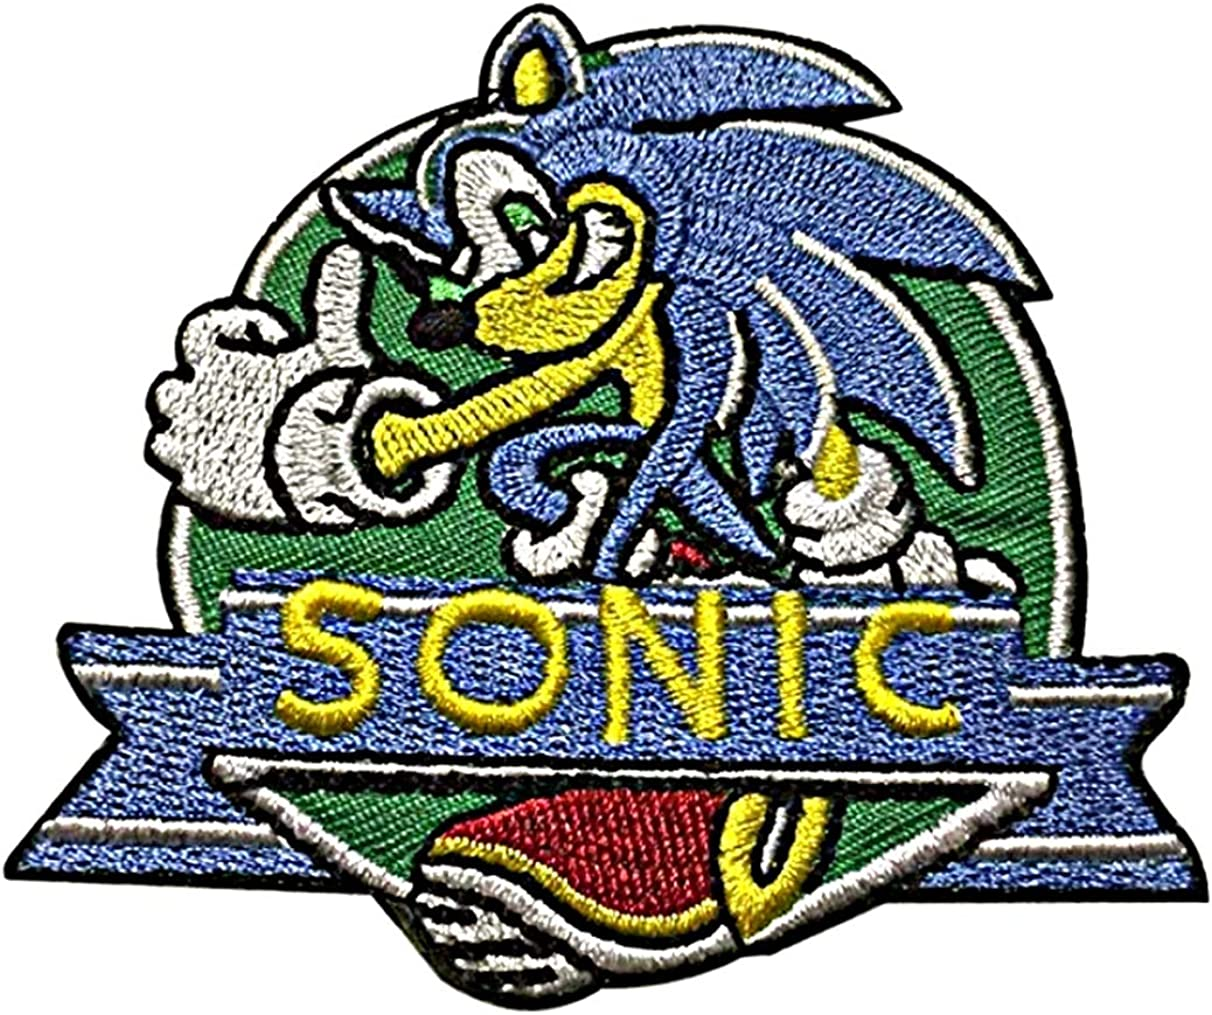 Amazon Com Sonic The Hedgehog 3 1 2 Inch Diameter Embroidered Iron On Patch Clothing